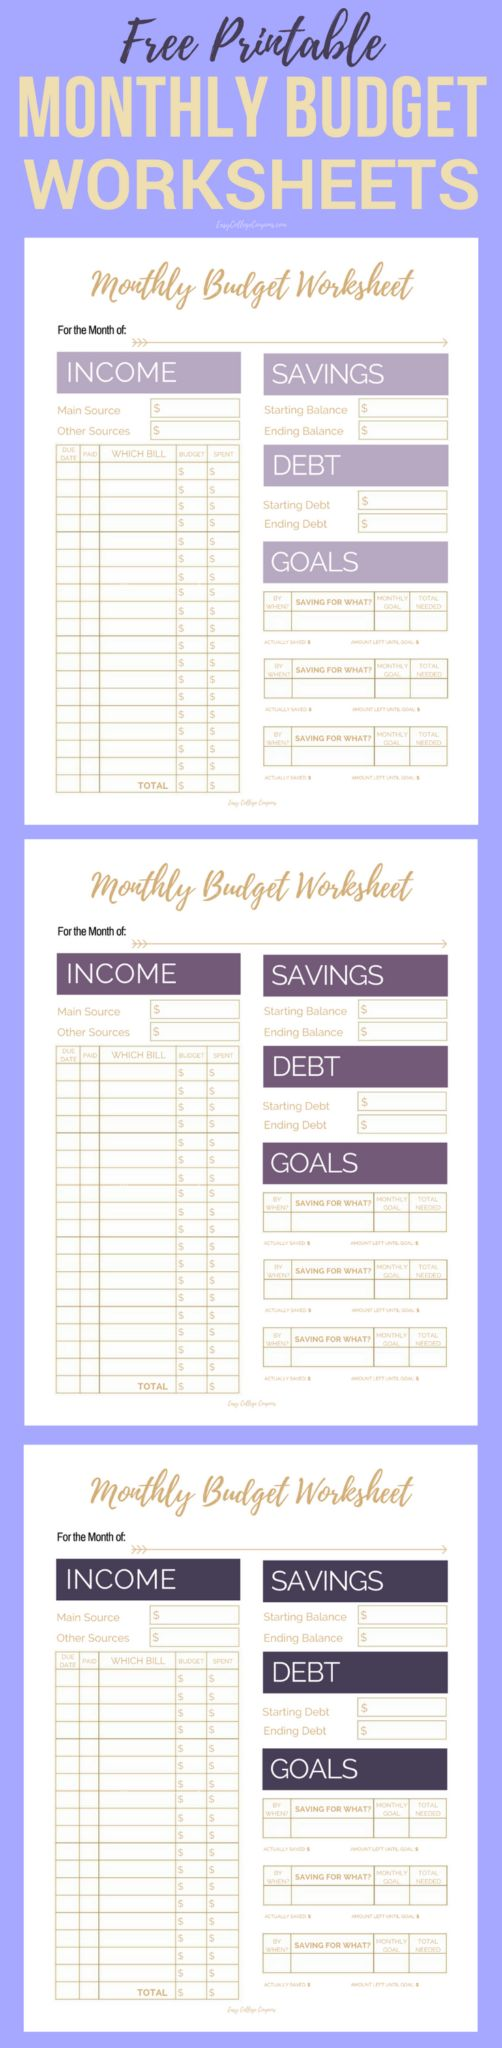 Worksheets Budgeting Worksheets Free best 25 printable budget sheets ideas on pinterest monthly free worksheets